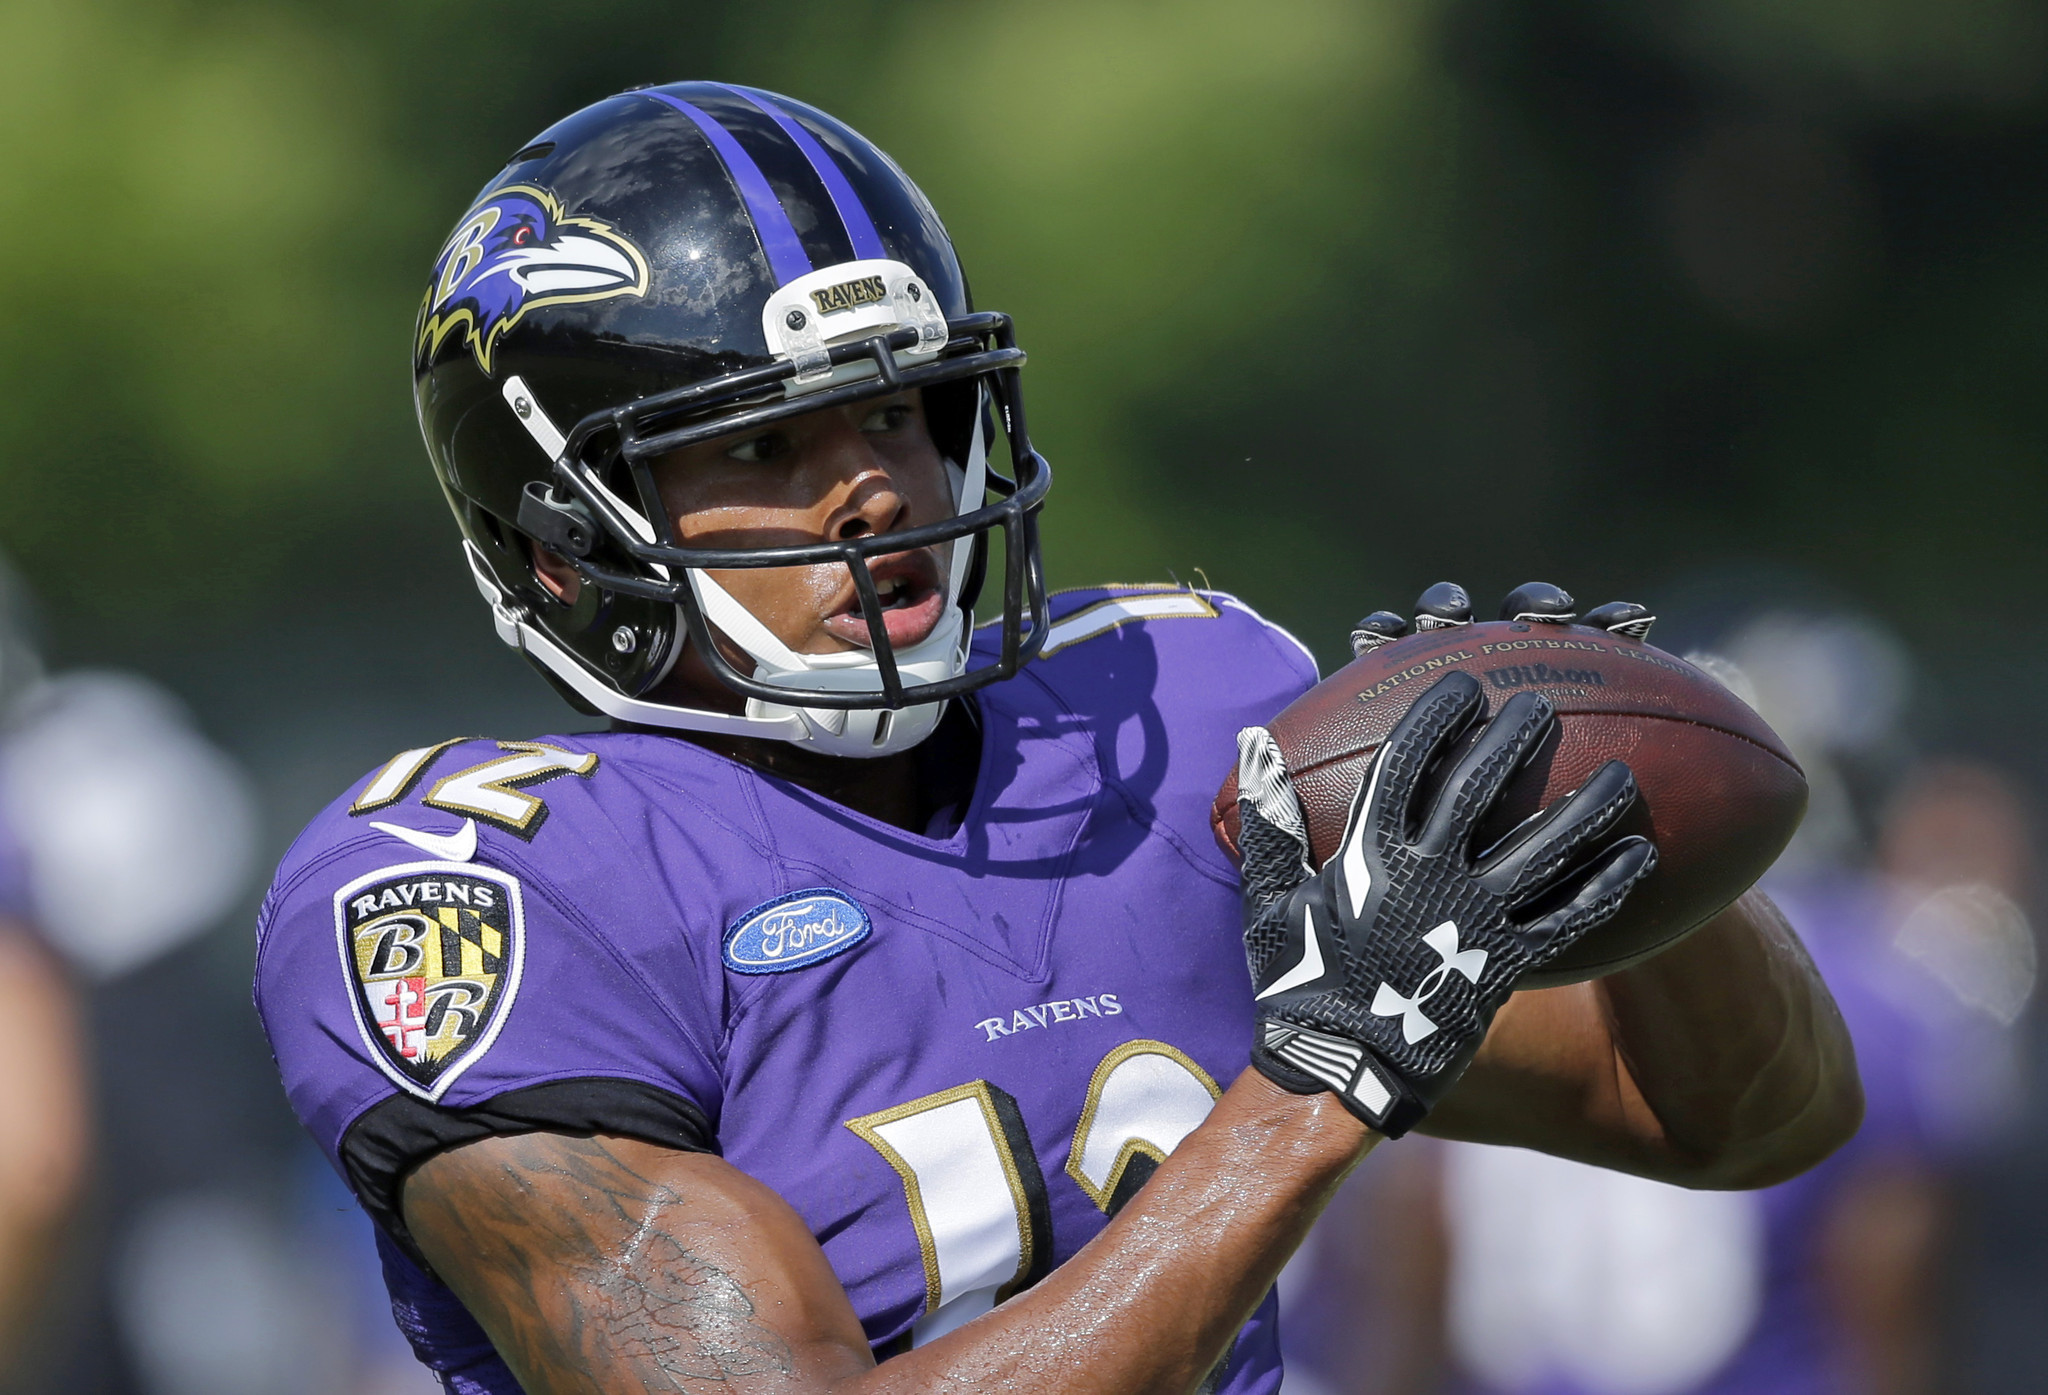 Northrop And Johnson >> The possibility of rookie wide receiver Darren Waller ...